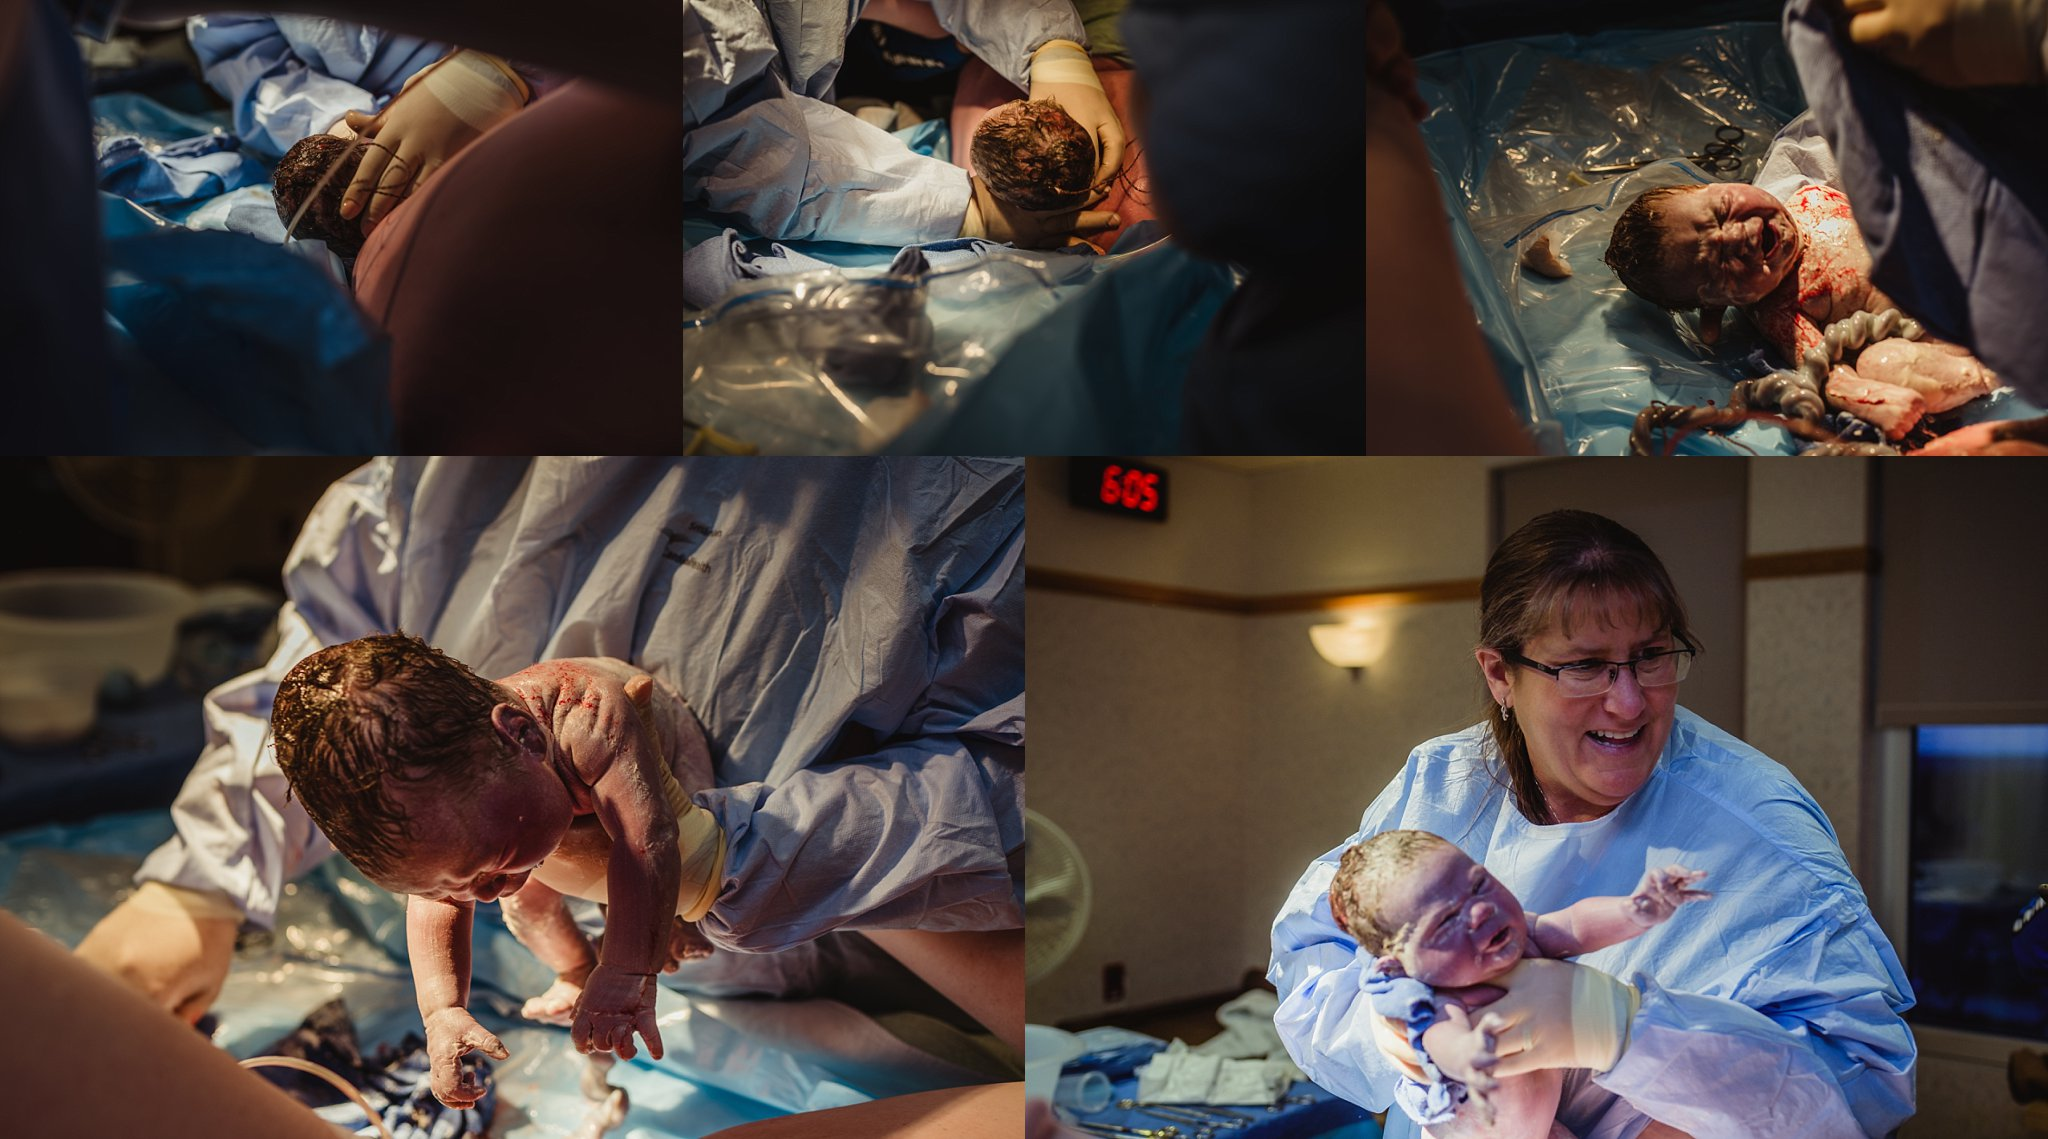 BrittneyHogue-BirthPhotographer-newbornphotographer-PeoriaIL-BloomingtonIL-1478.jpg